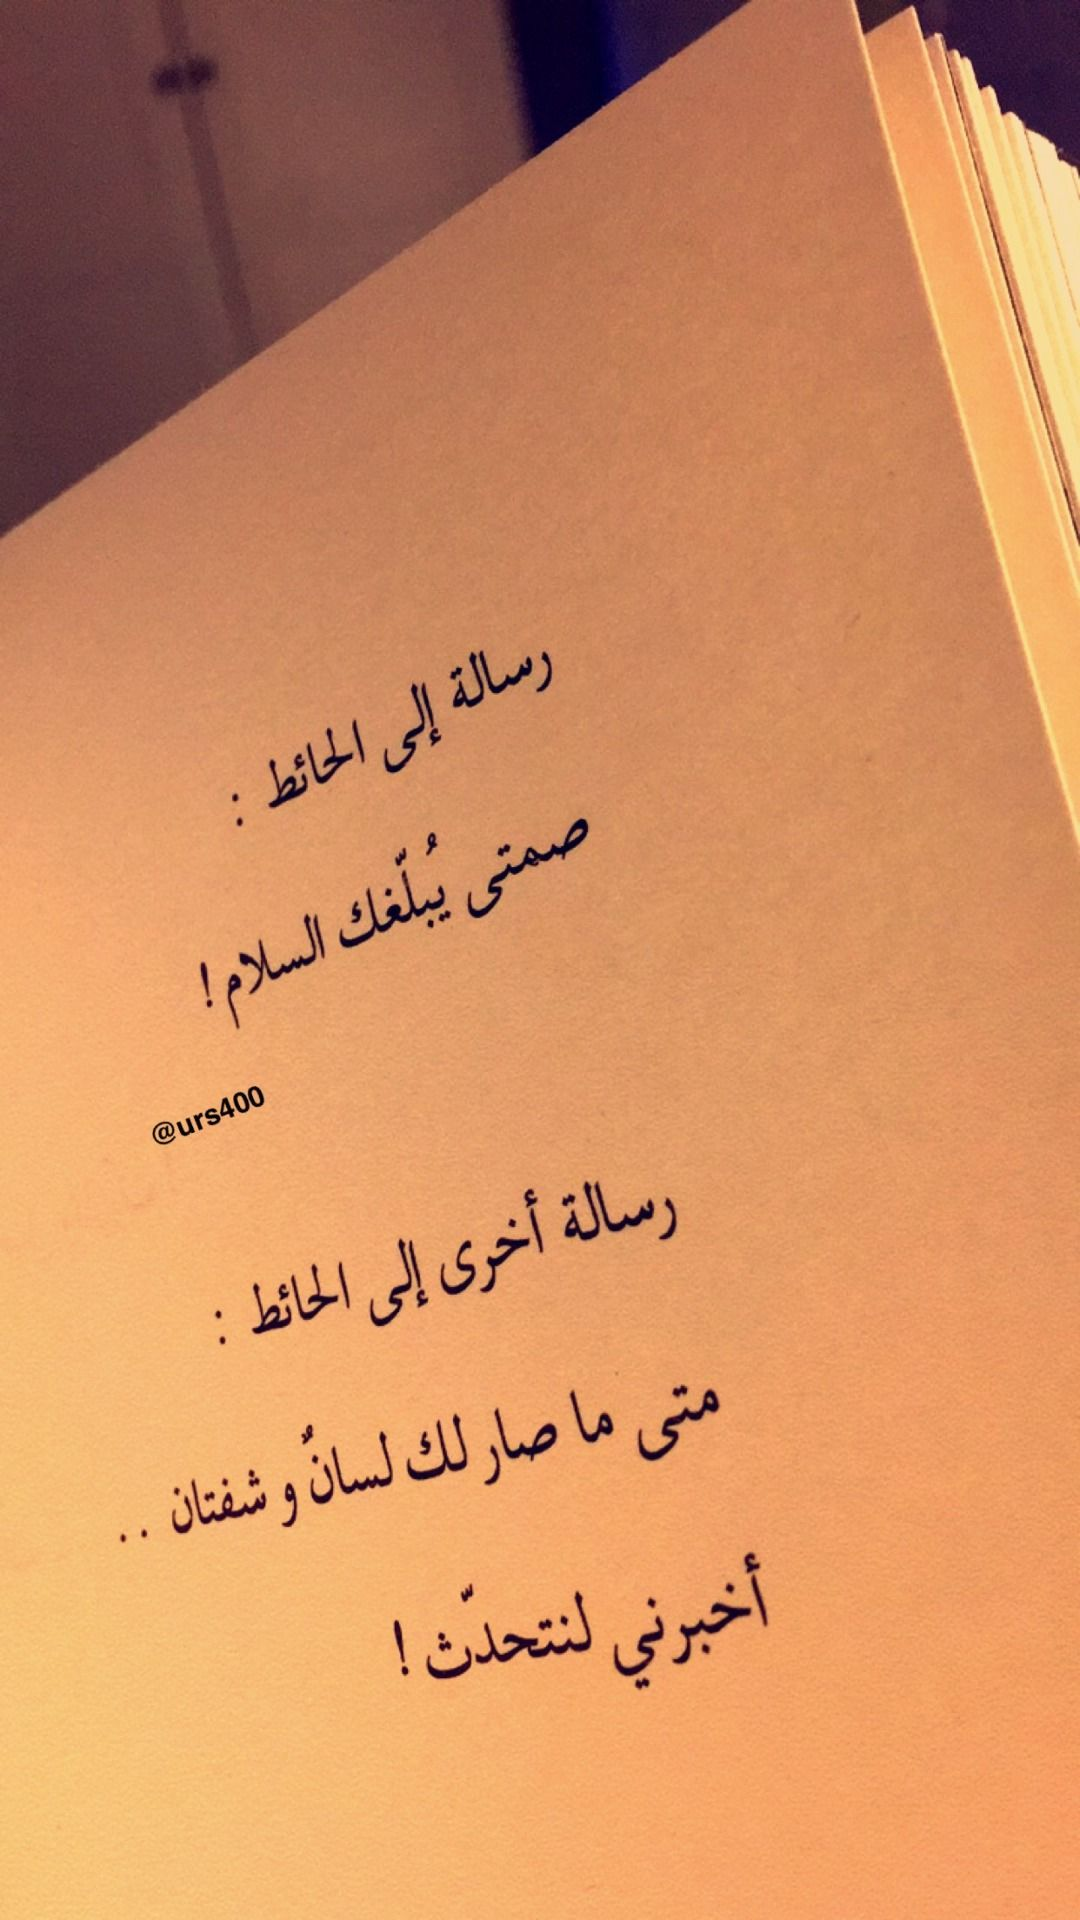 P انستغرام Urs400 تويتر Nuage111 P Talking Quotes Words Quotes Proverbs Quotes